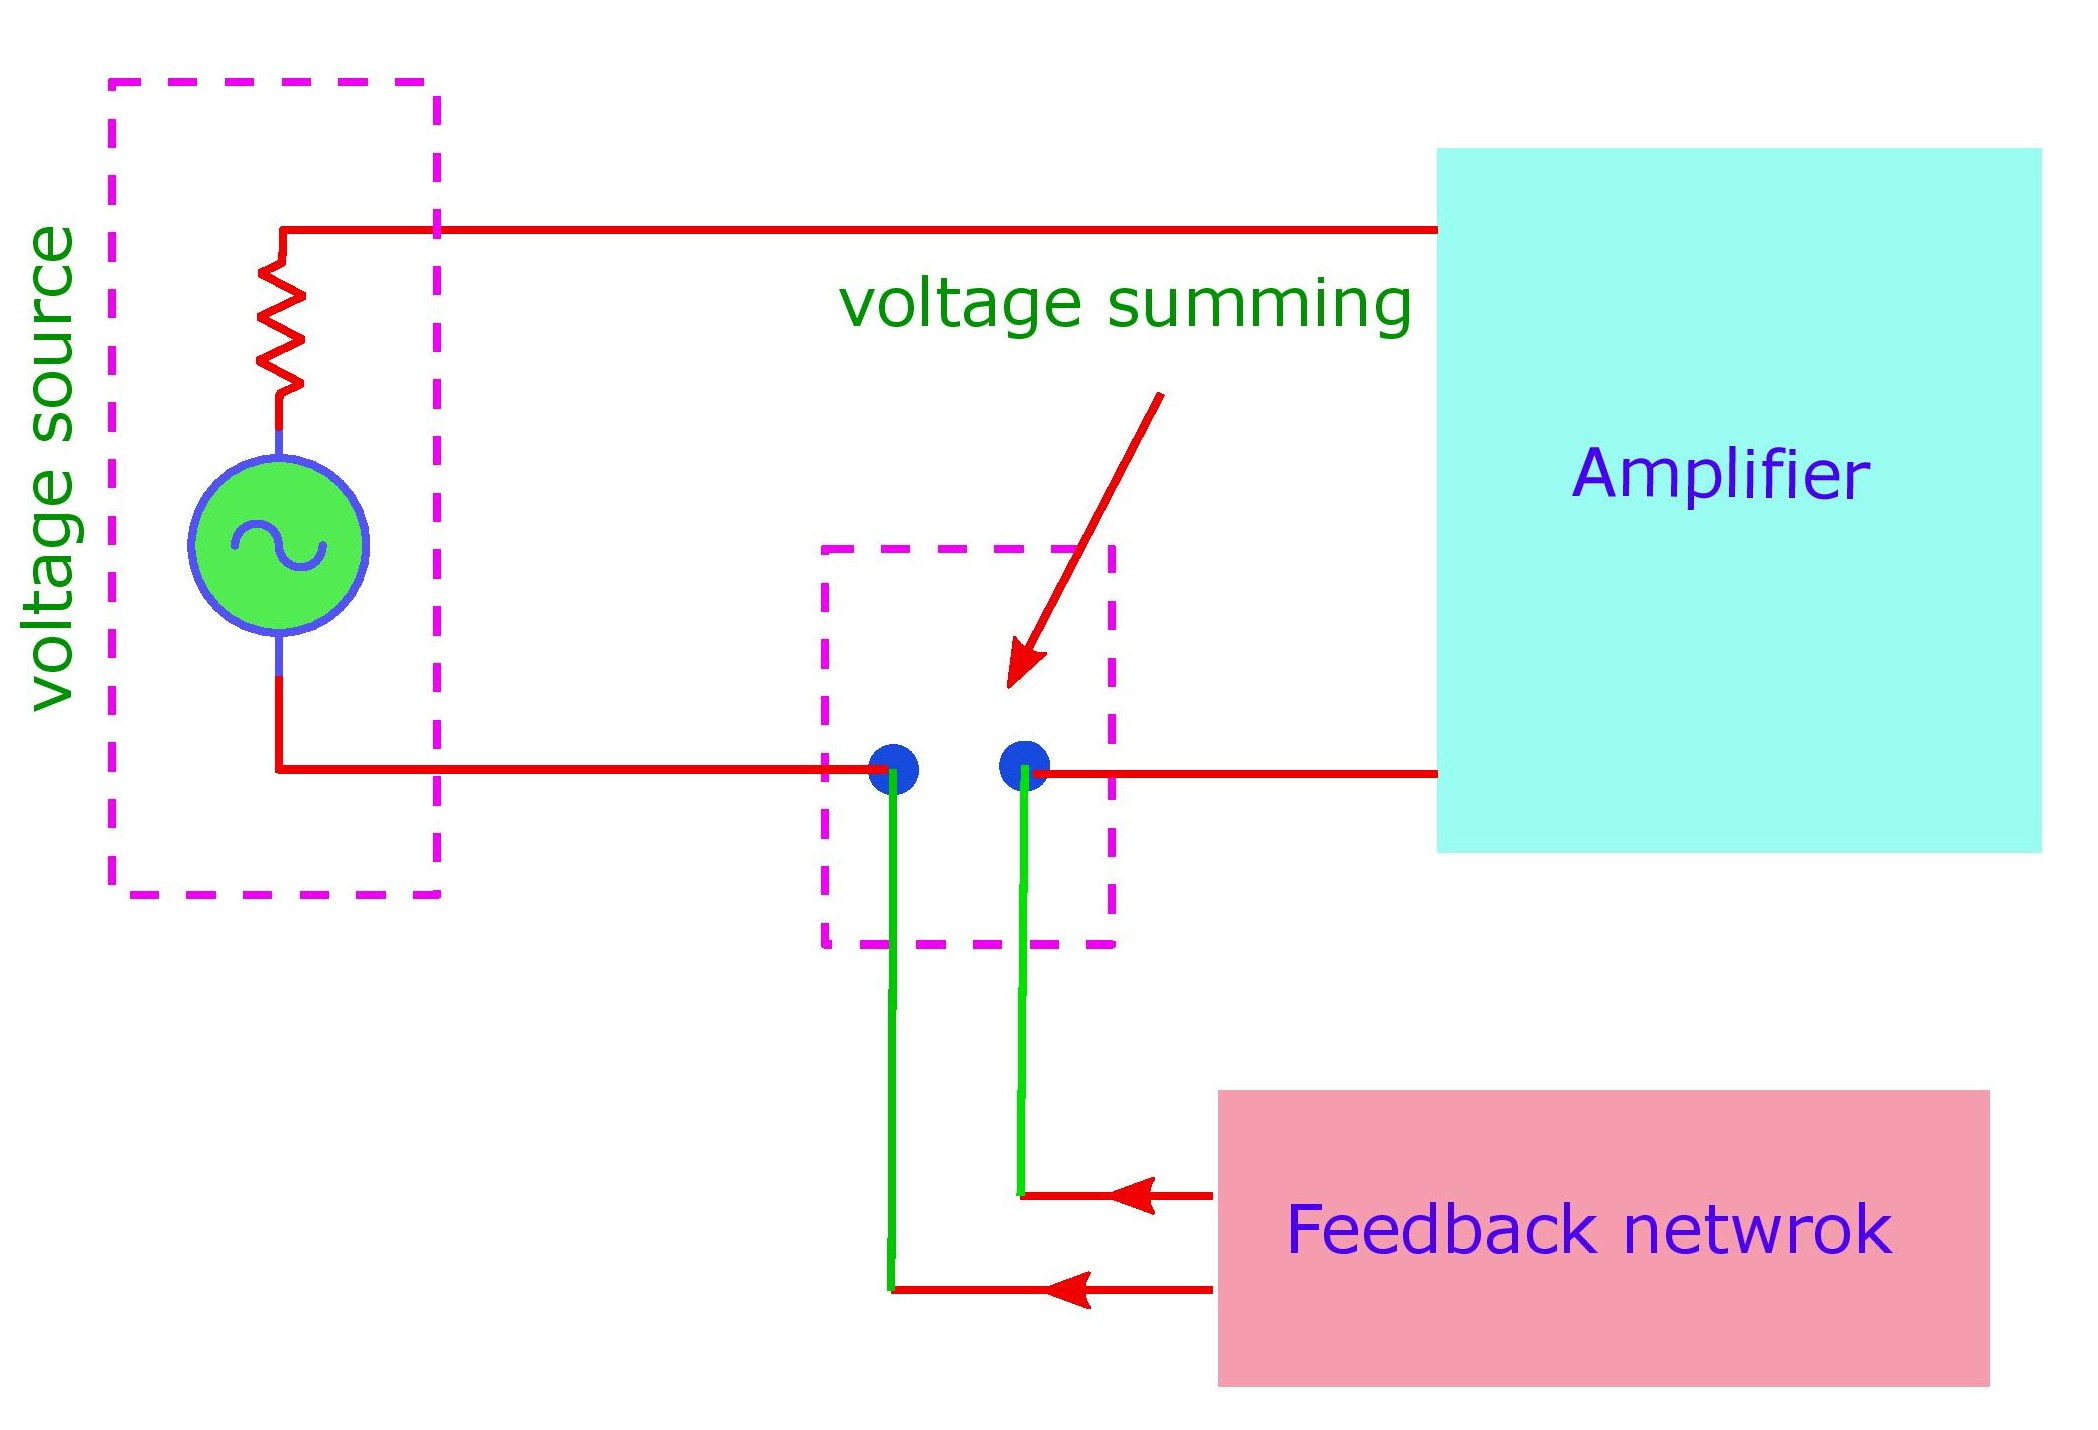 The voltage summing or mixing: its always a series connection in the input circuit by which voltage can be fed to the input.